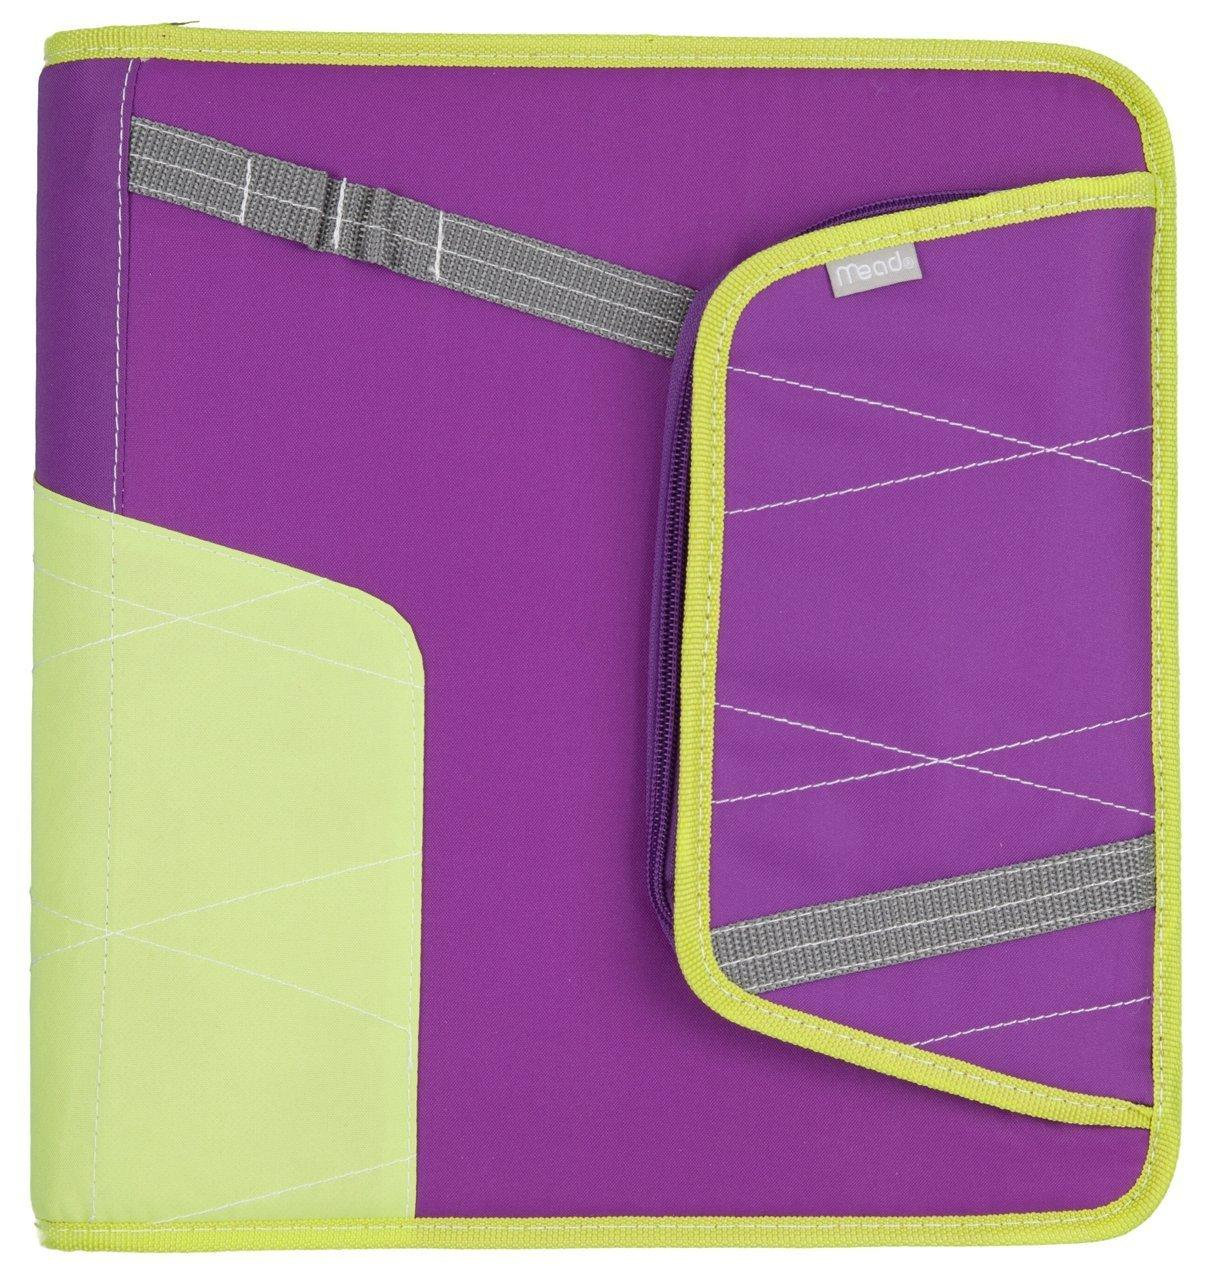 Amazon.com : Mead Zipper 2-Inch Binder With Pocket, Purple